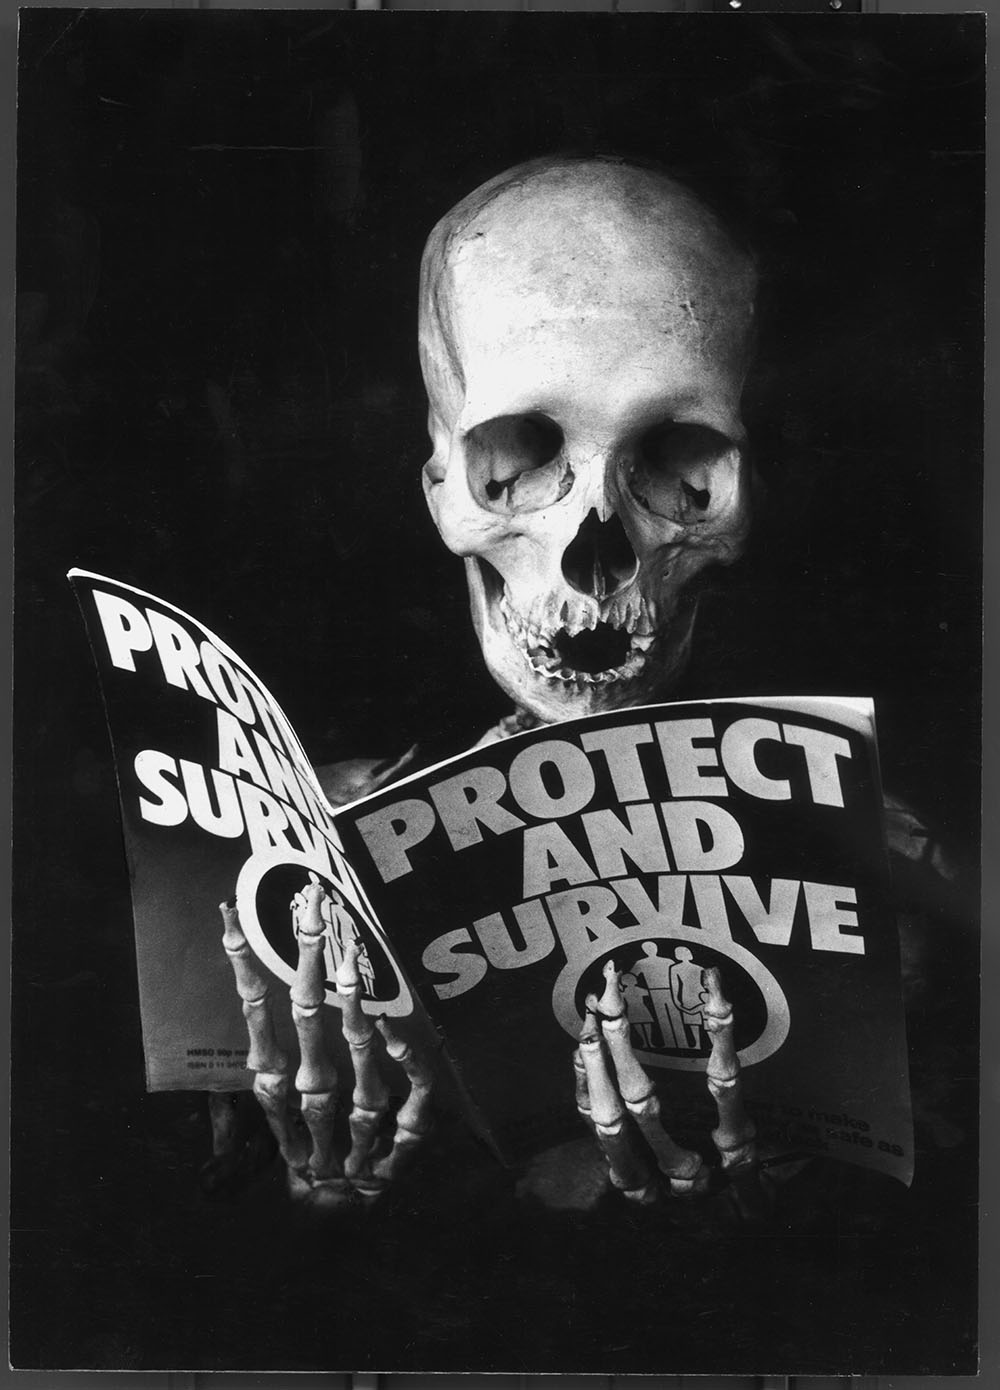 Protest and Survive - PhotomontageGelatin silver prints andink on card1981First published:No Nuclear Weapons,CND/Pluto Press, 1981Catalogue: PK/100